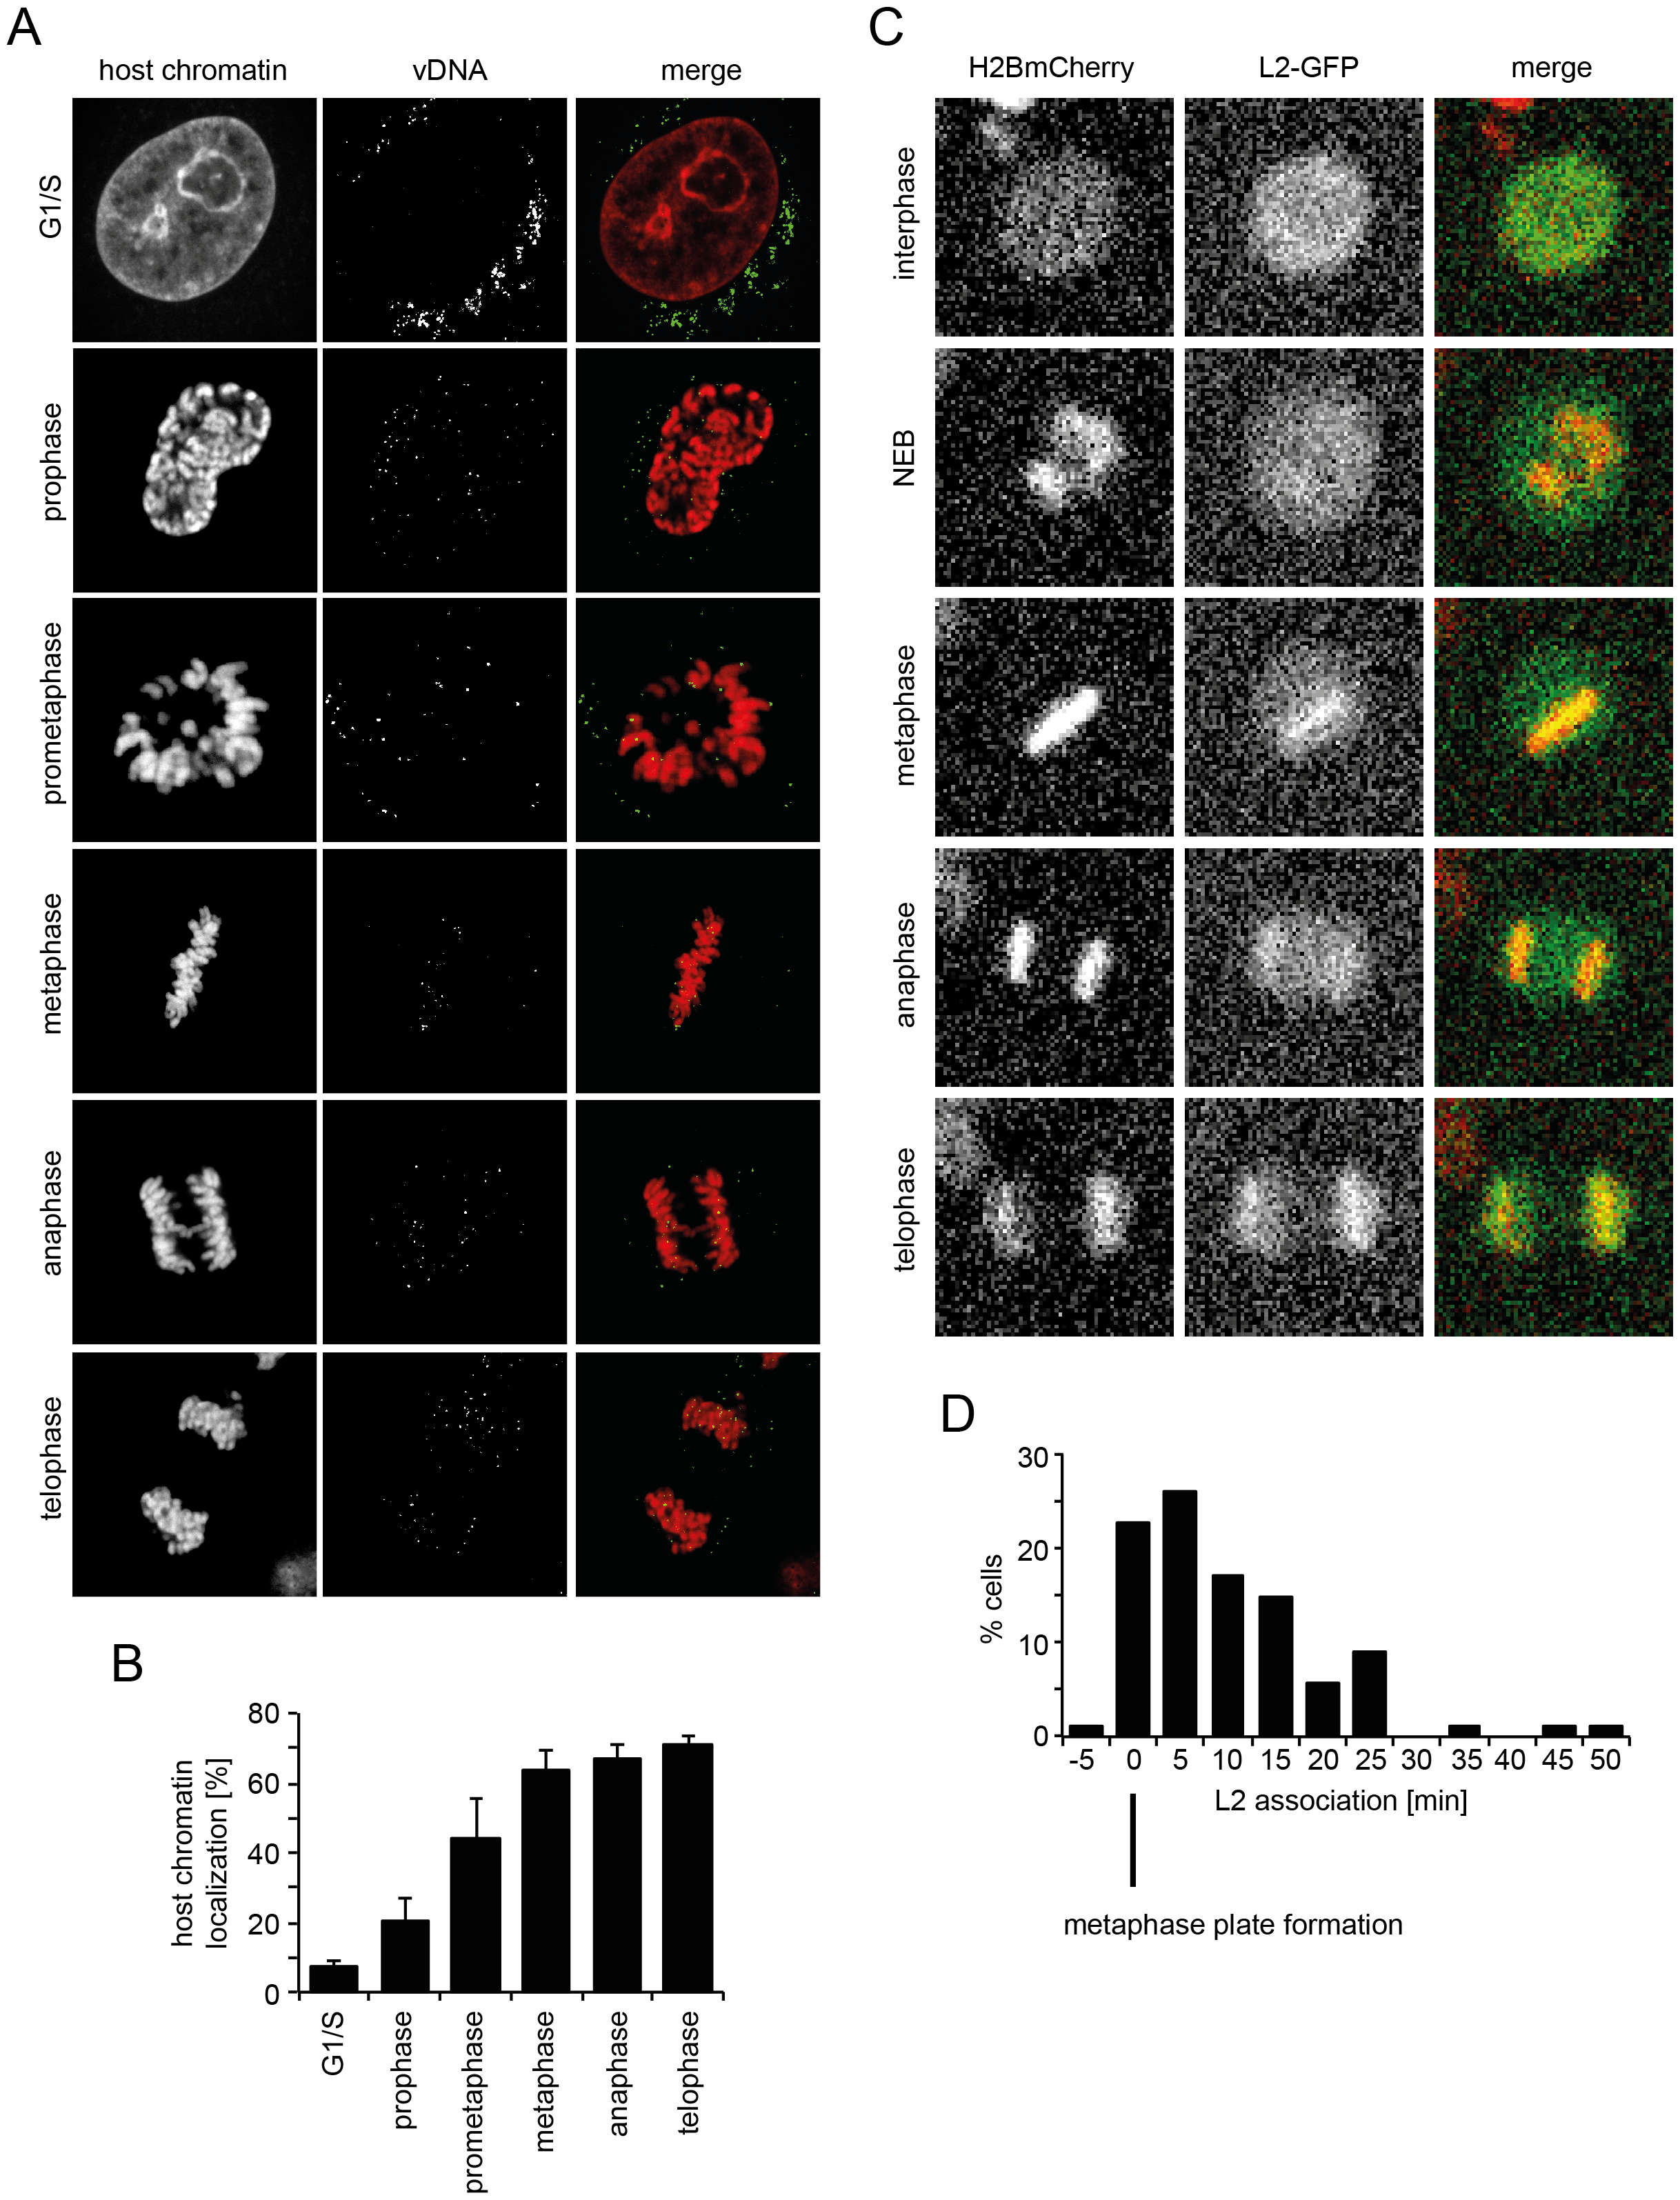 vDNA and L2-GFP associate with mitotic chromosomes.